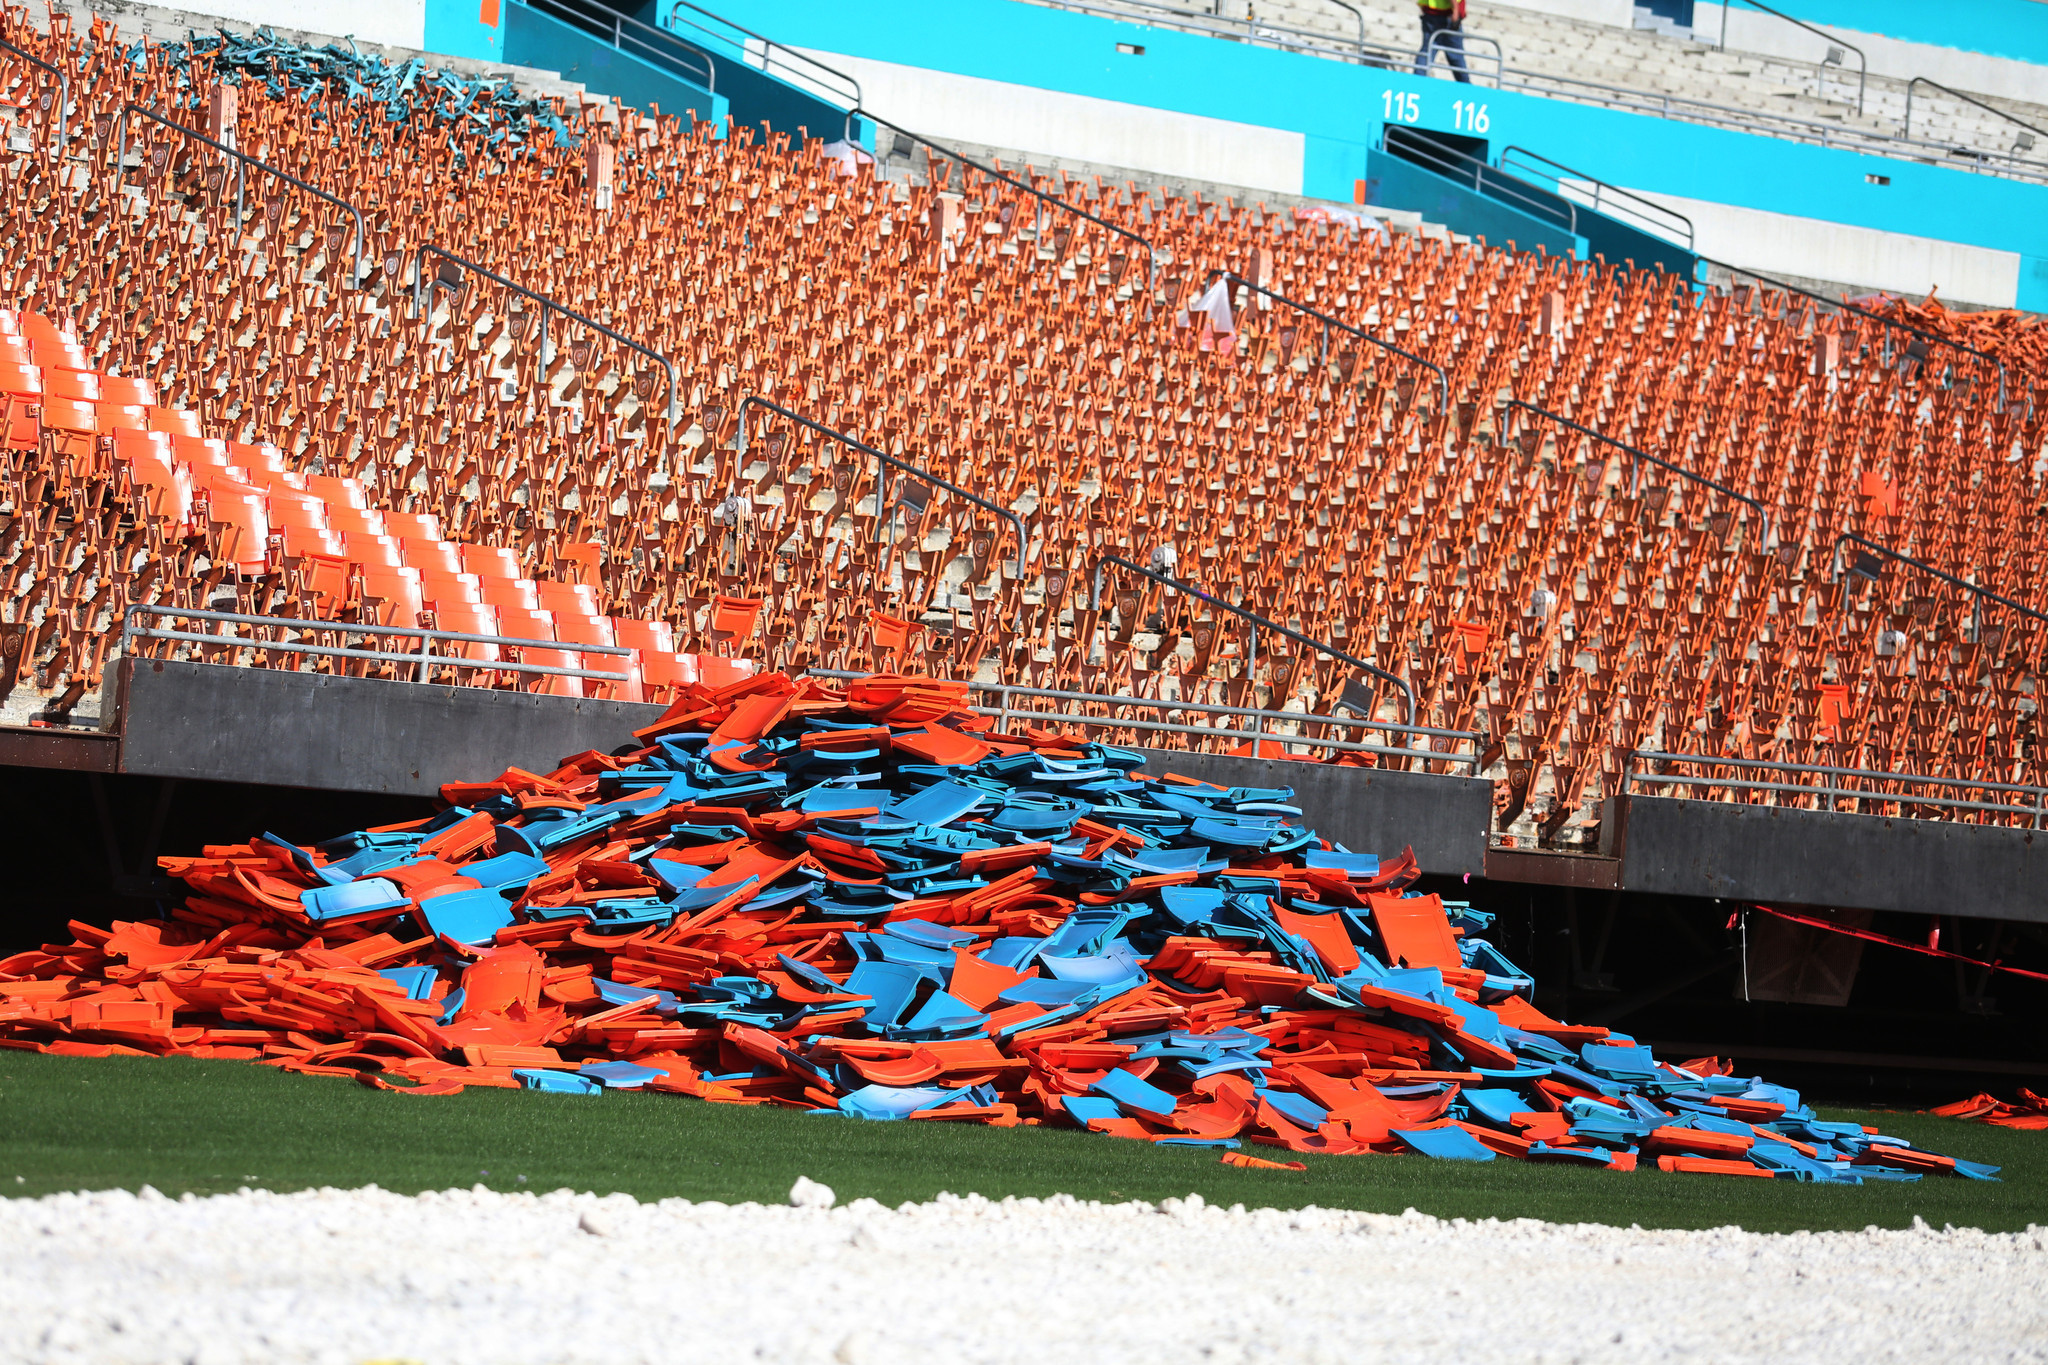 sfl-dolphins-sell-old-sun-life-stadium-seats-20150706.jpg